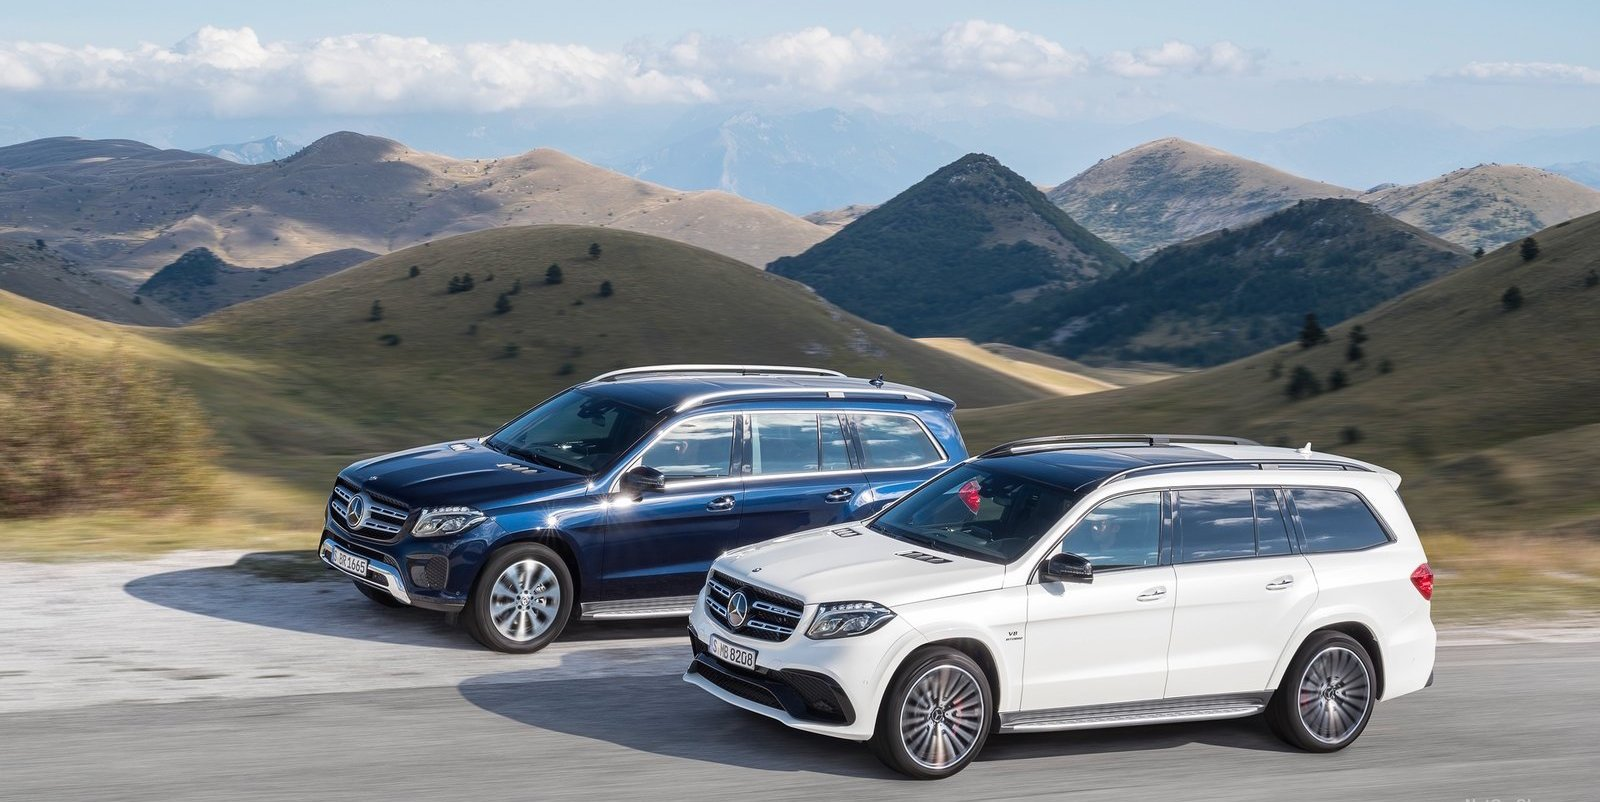 2016 mercedes benz gls pricing and specifications photos ForMercedes Benz Costs